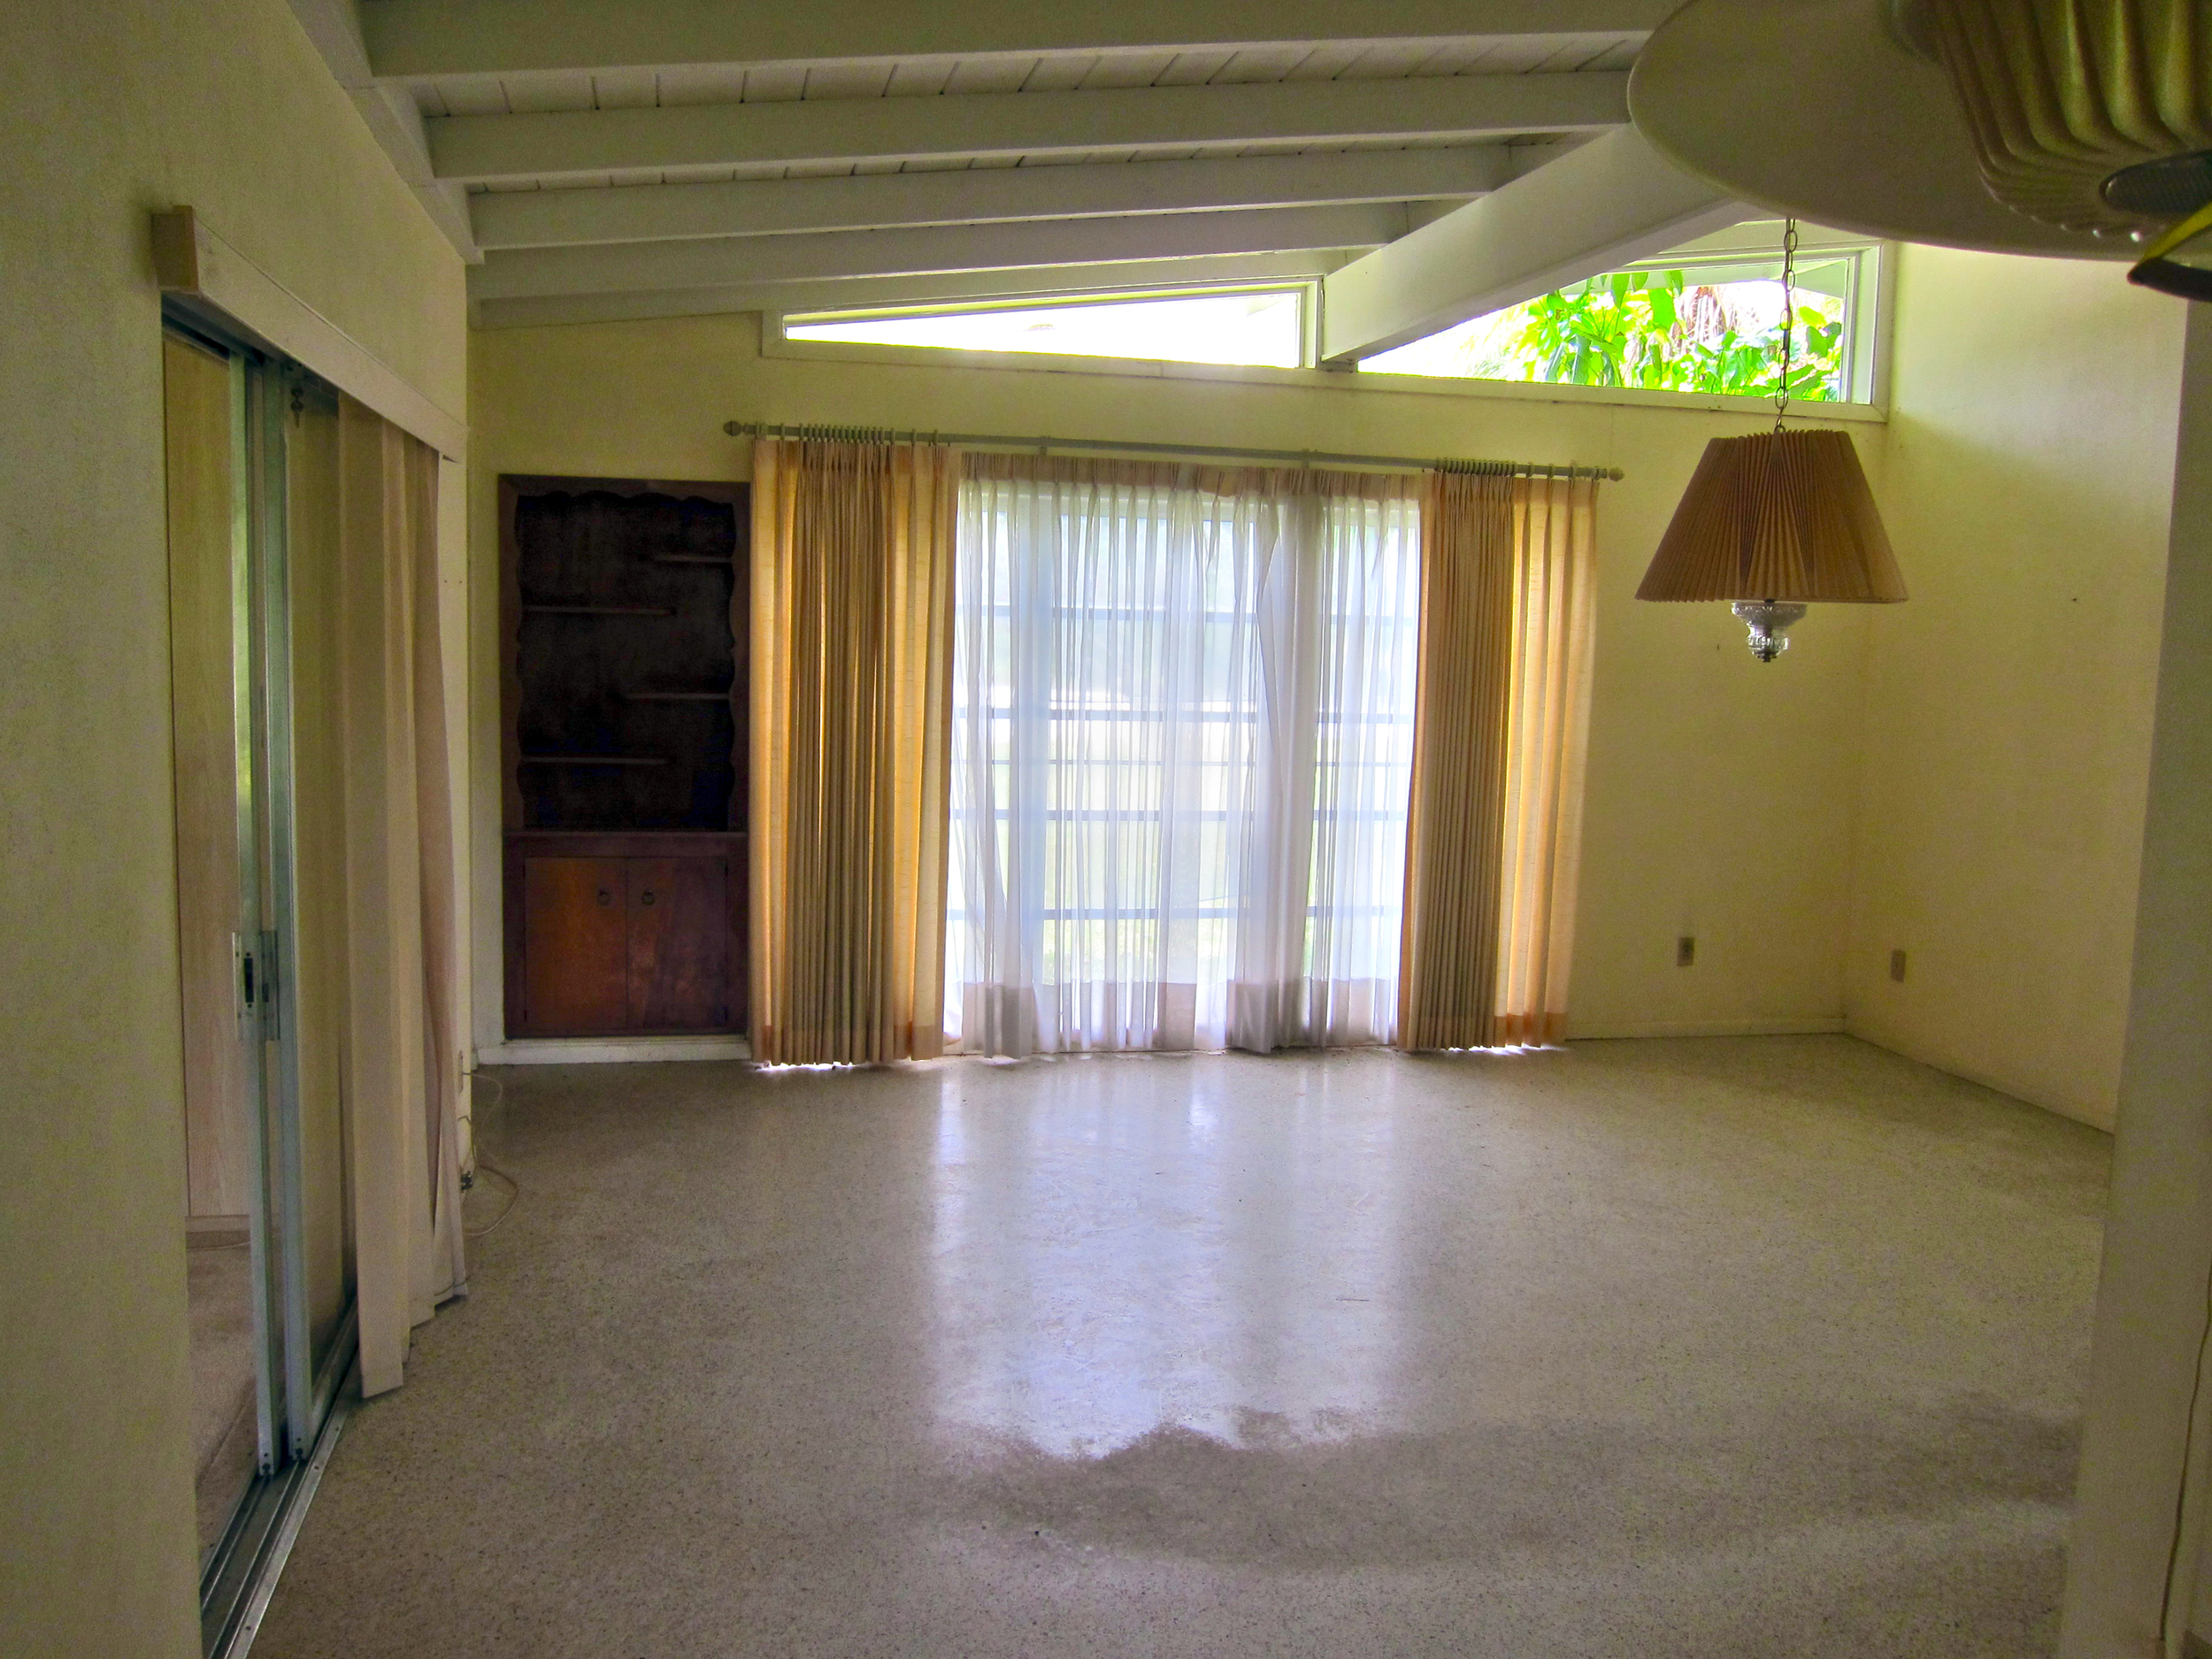 5 living room before.jpg